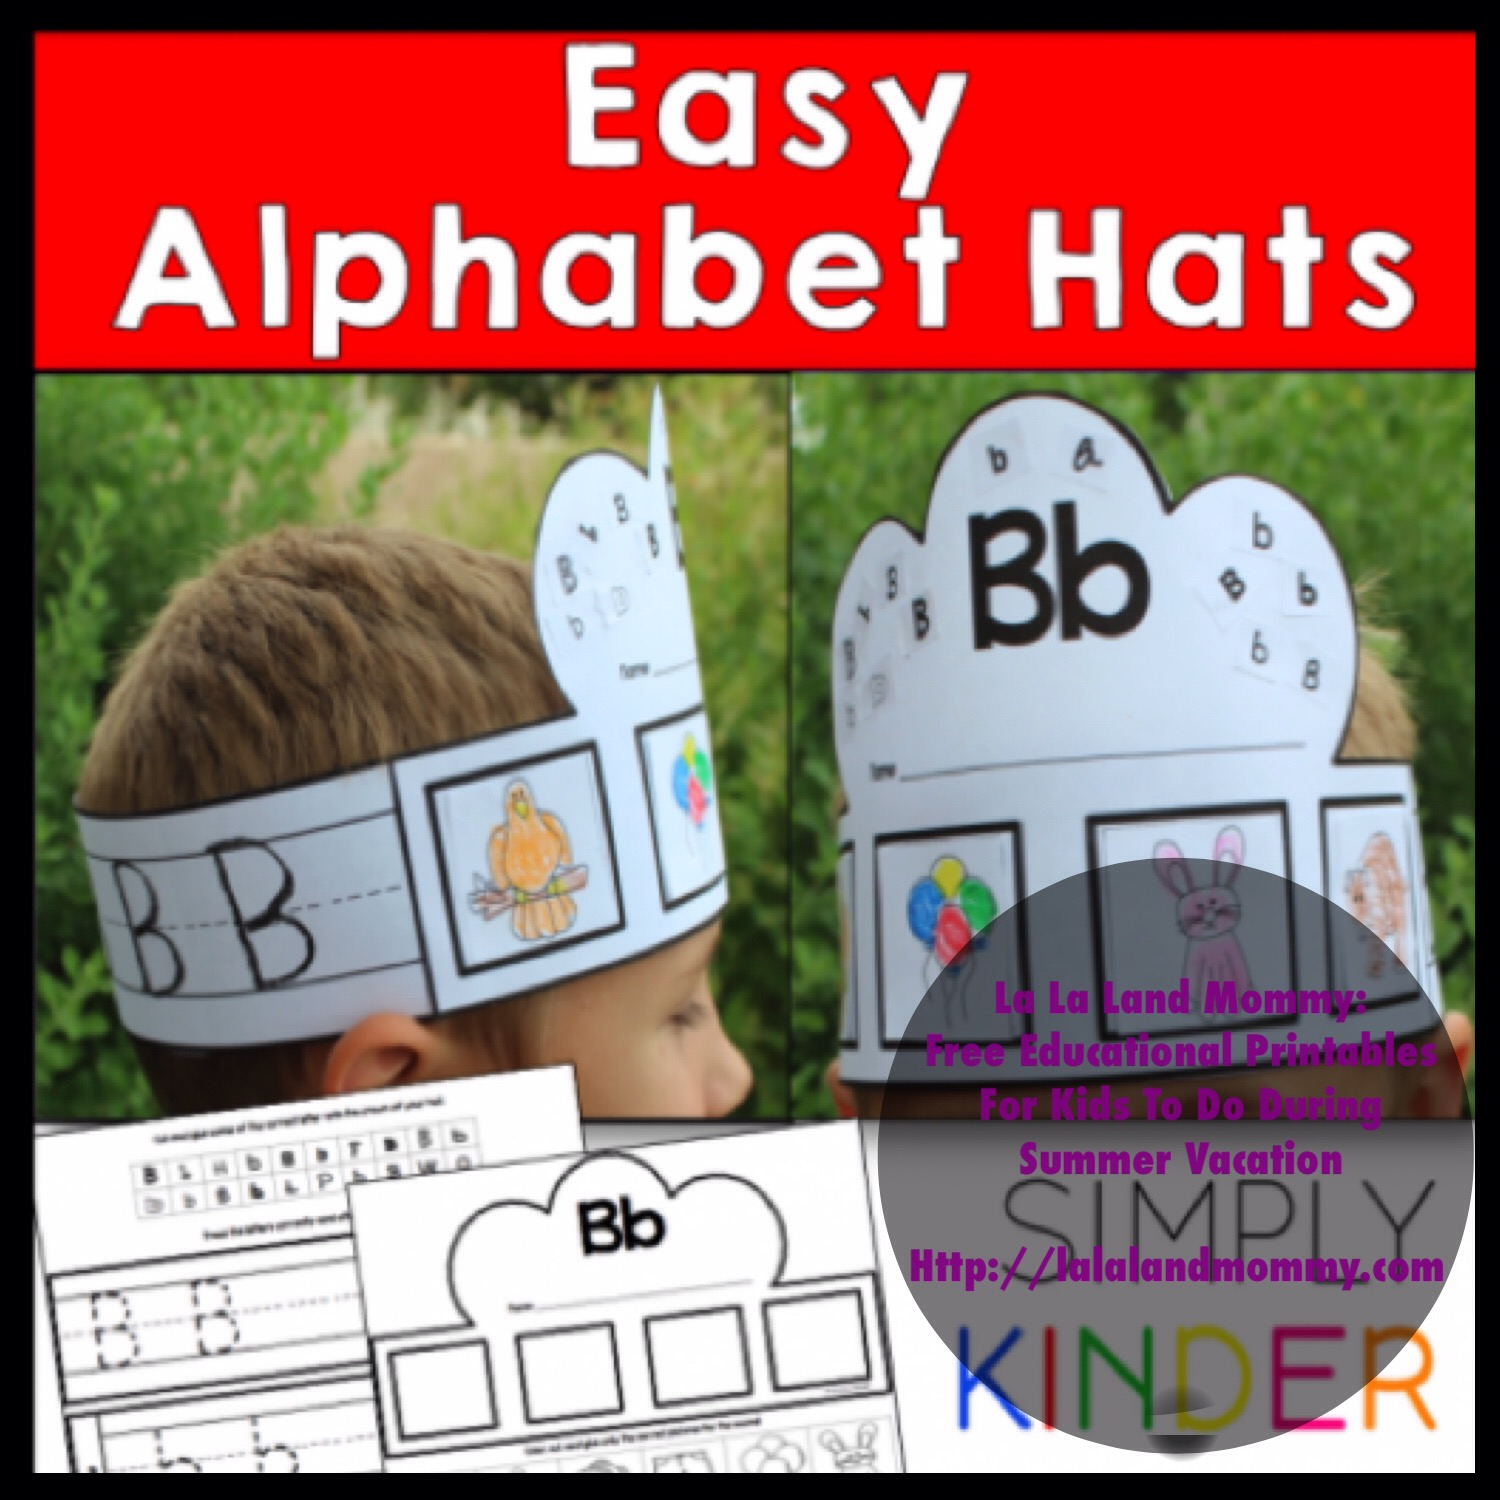 Free Educational Printables For Kids To Do During Summer